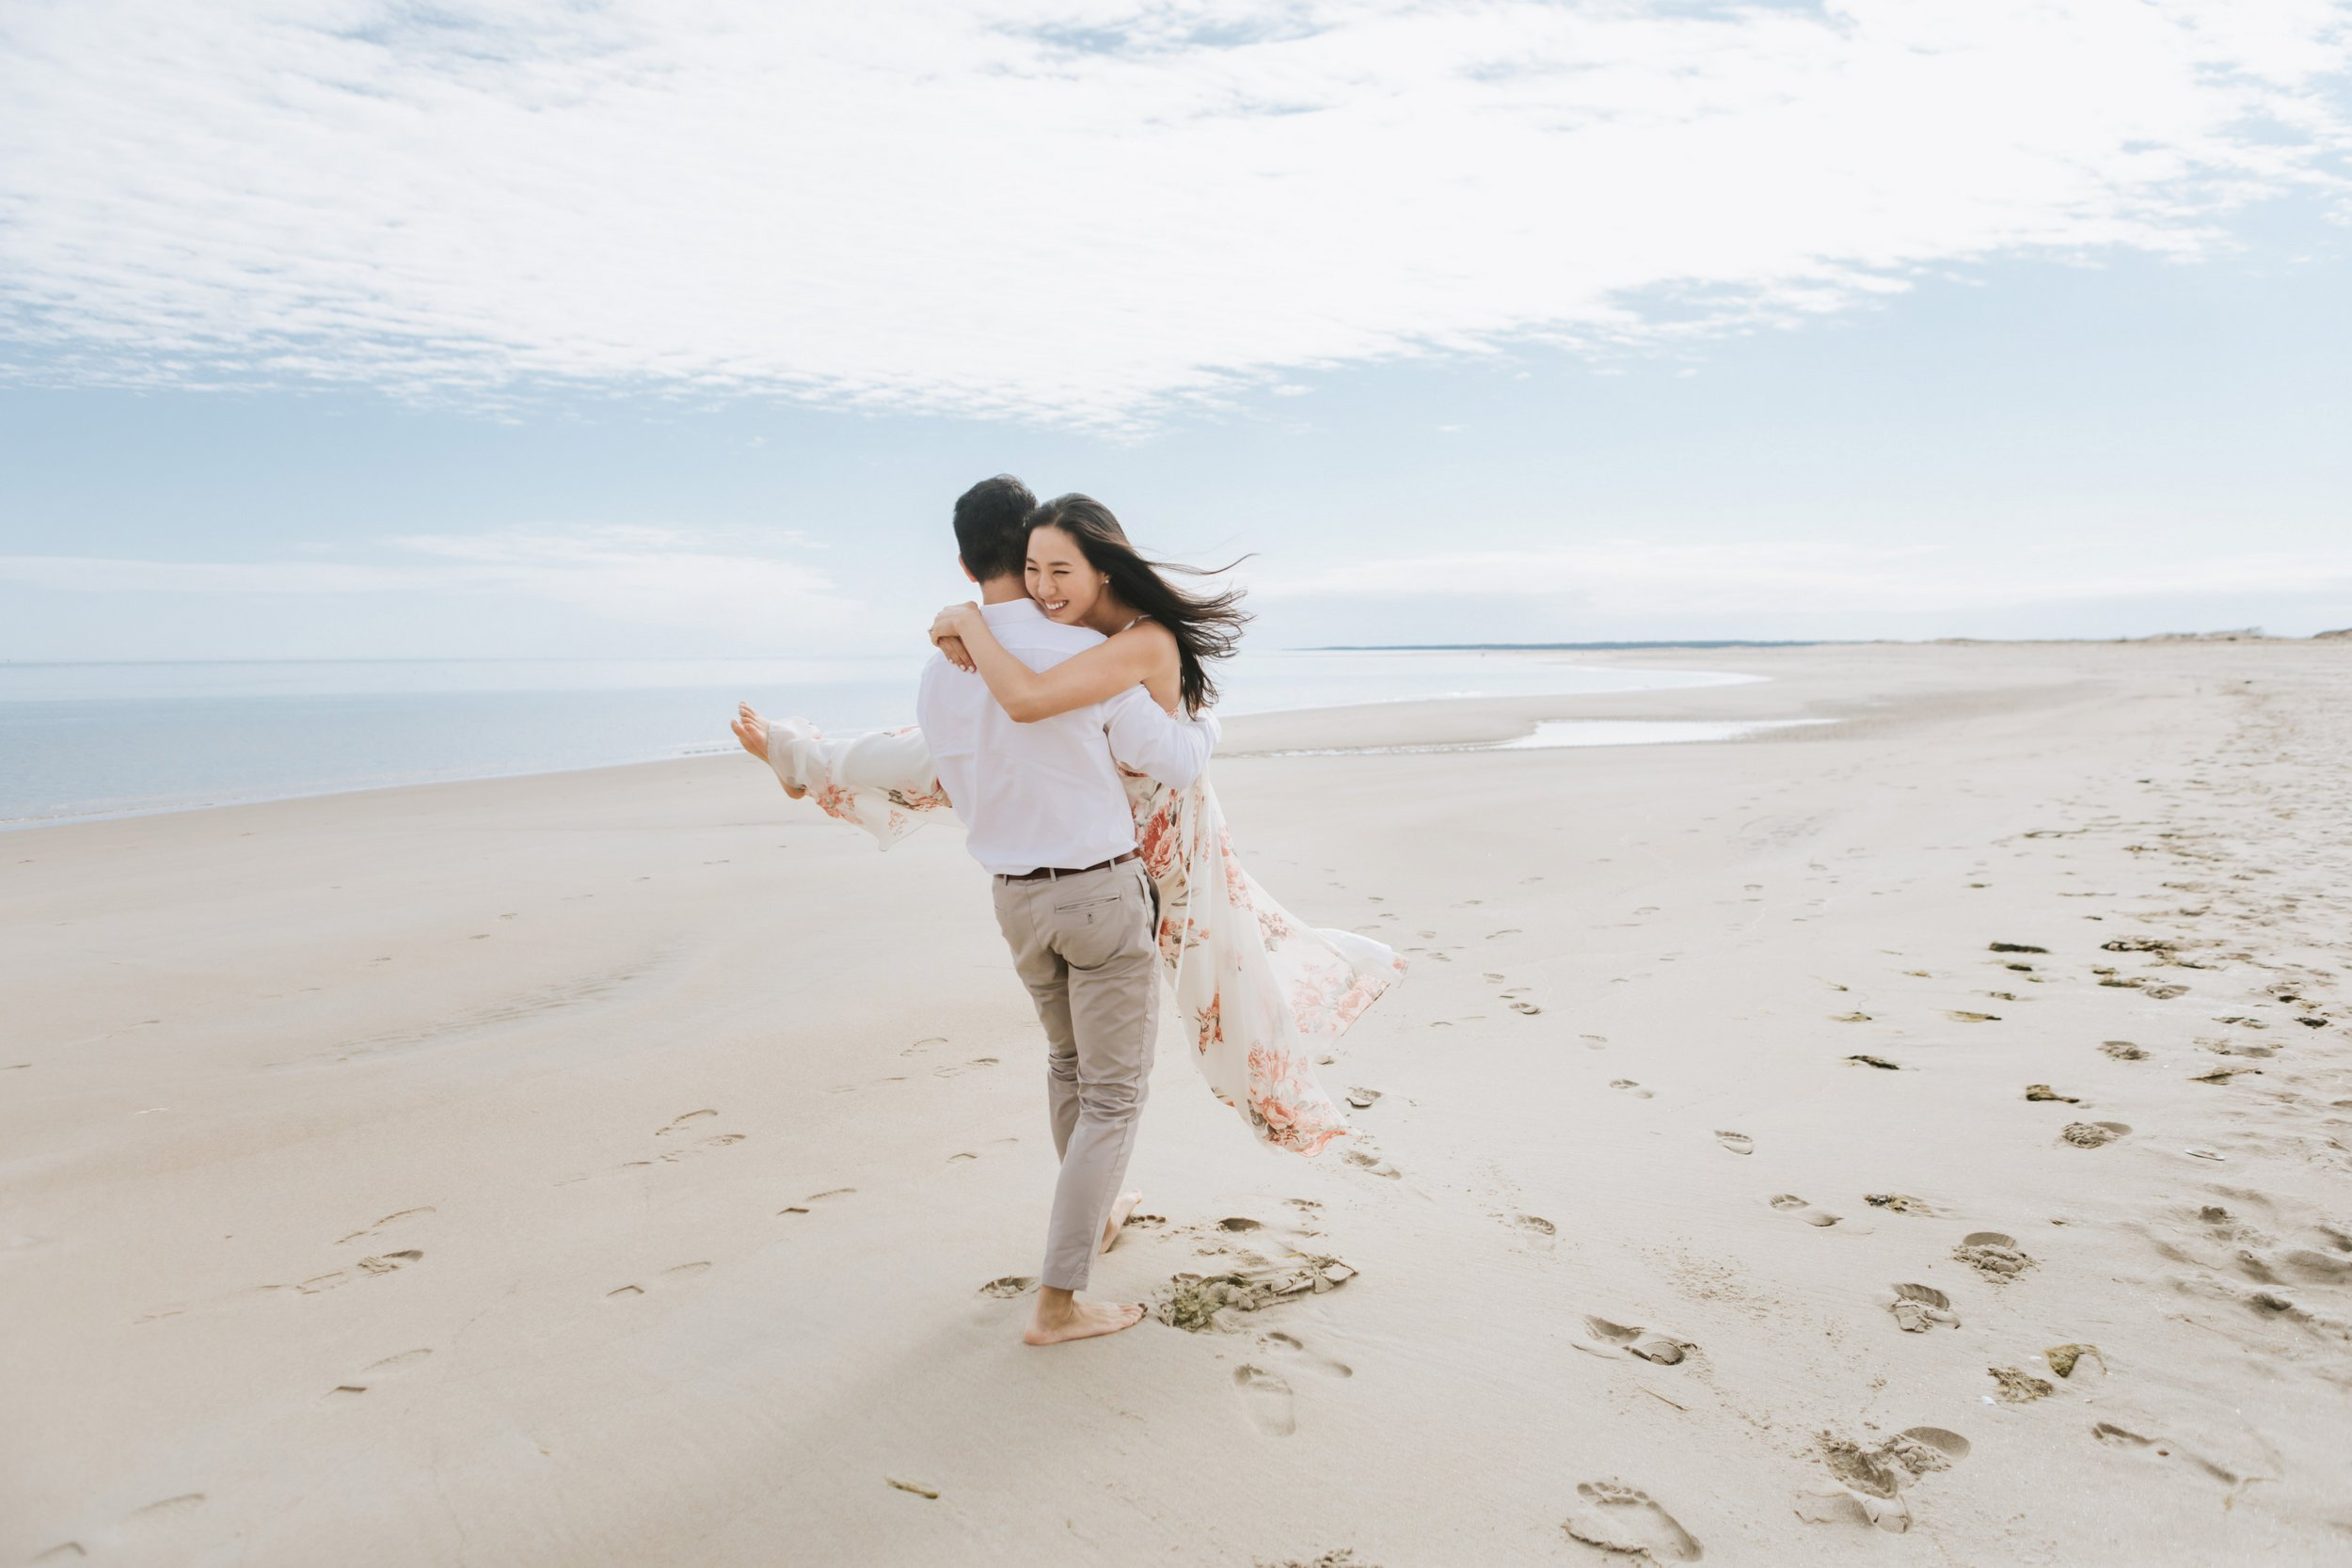 Crane-Beach-Engagement-Wedding-Lena-Mirisola-3.JPG